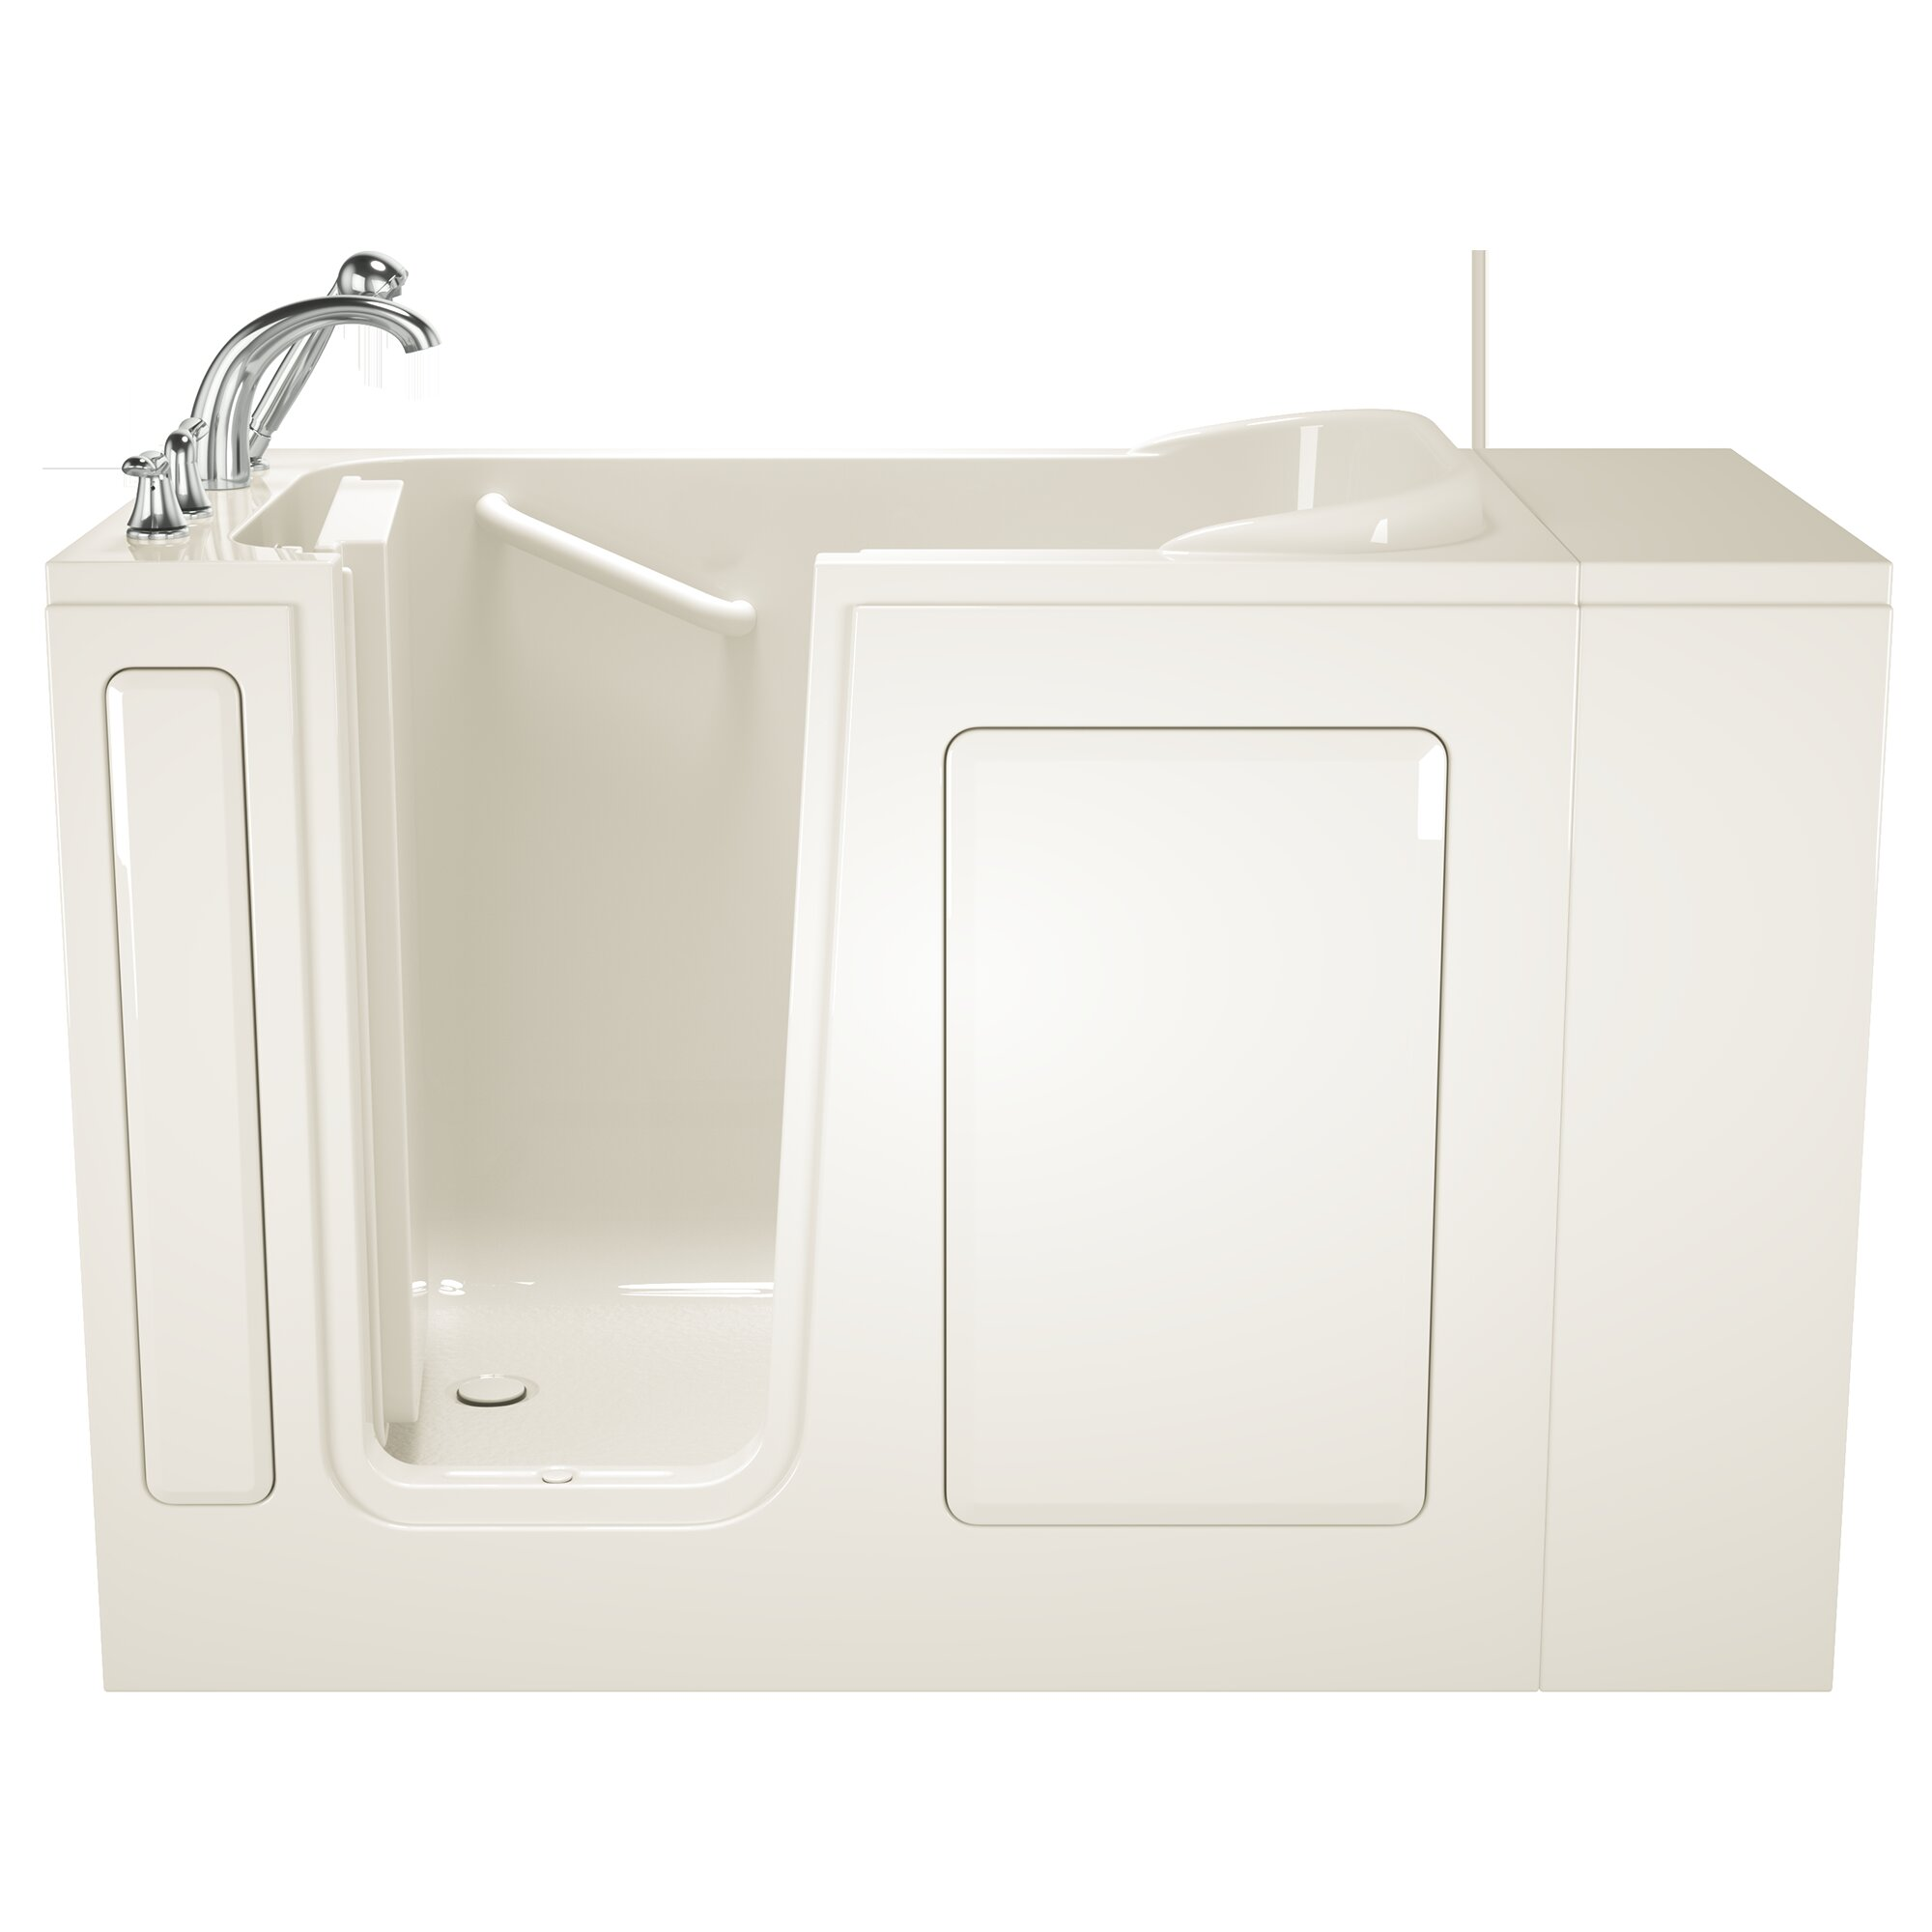 Details About Safety Tubs Left Hand Entry Series 48 X 28 Walk In Soaking Bathtub